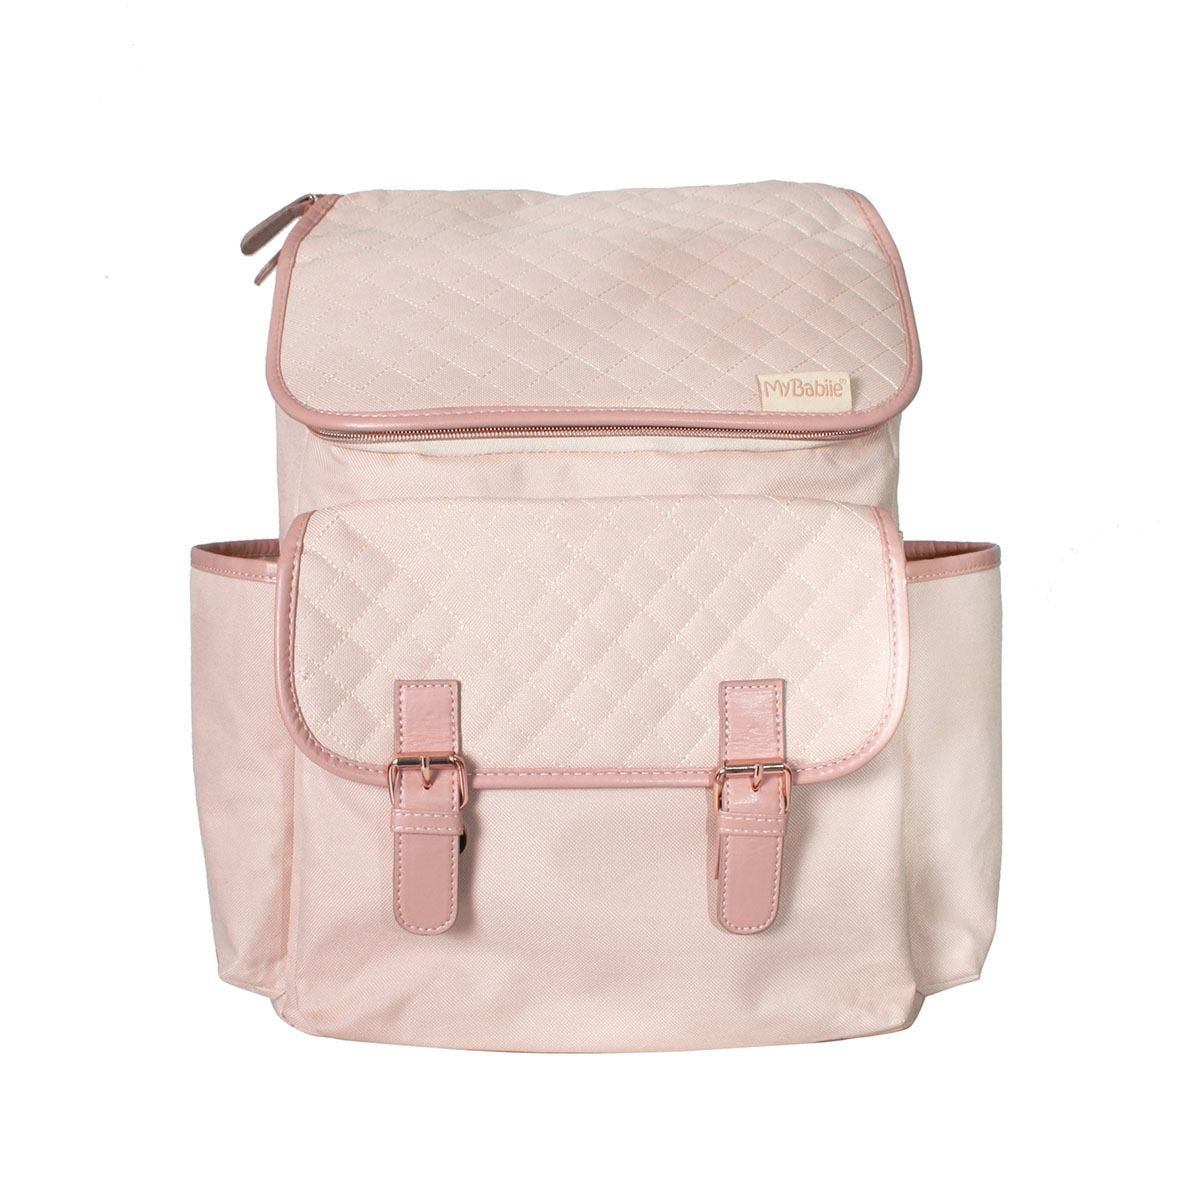 My Babiie Billie Faiers Backpack Changing Bag - Blush